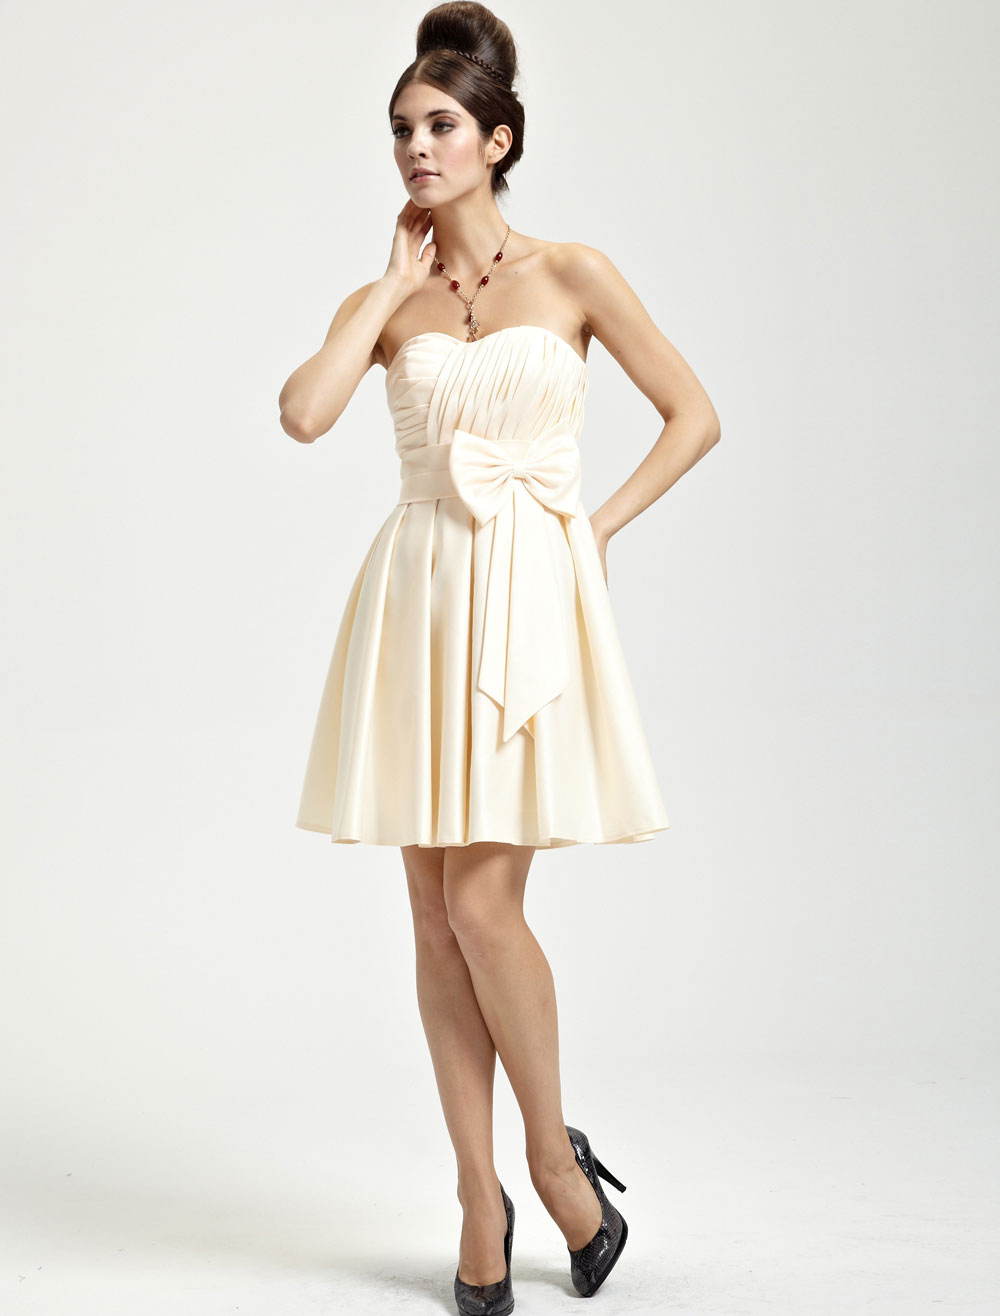 Buy Gold Champagne Satin Bow Sweetheart Short Bridesmaid Dress for $80.51 in Milanoo store